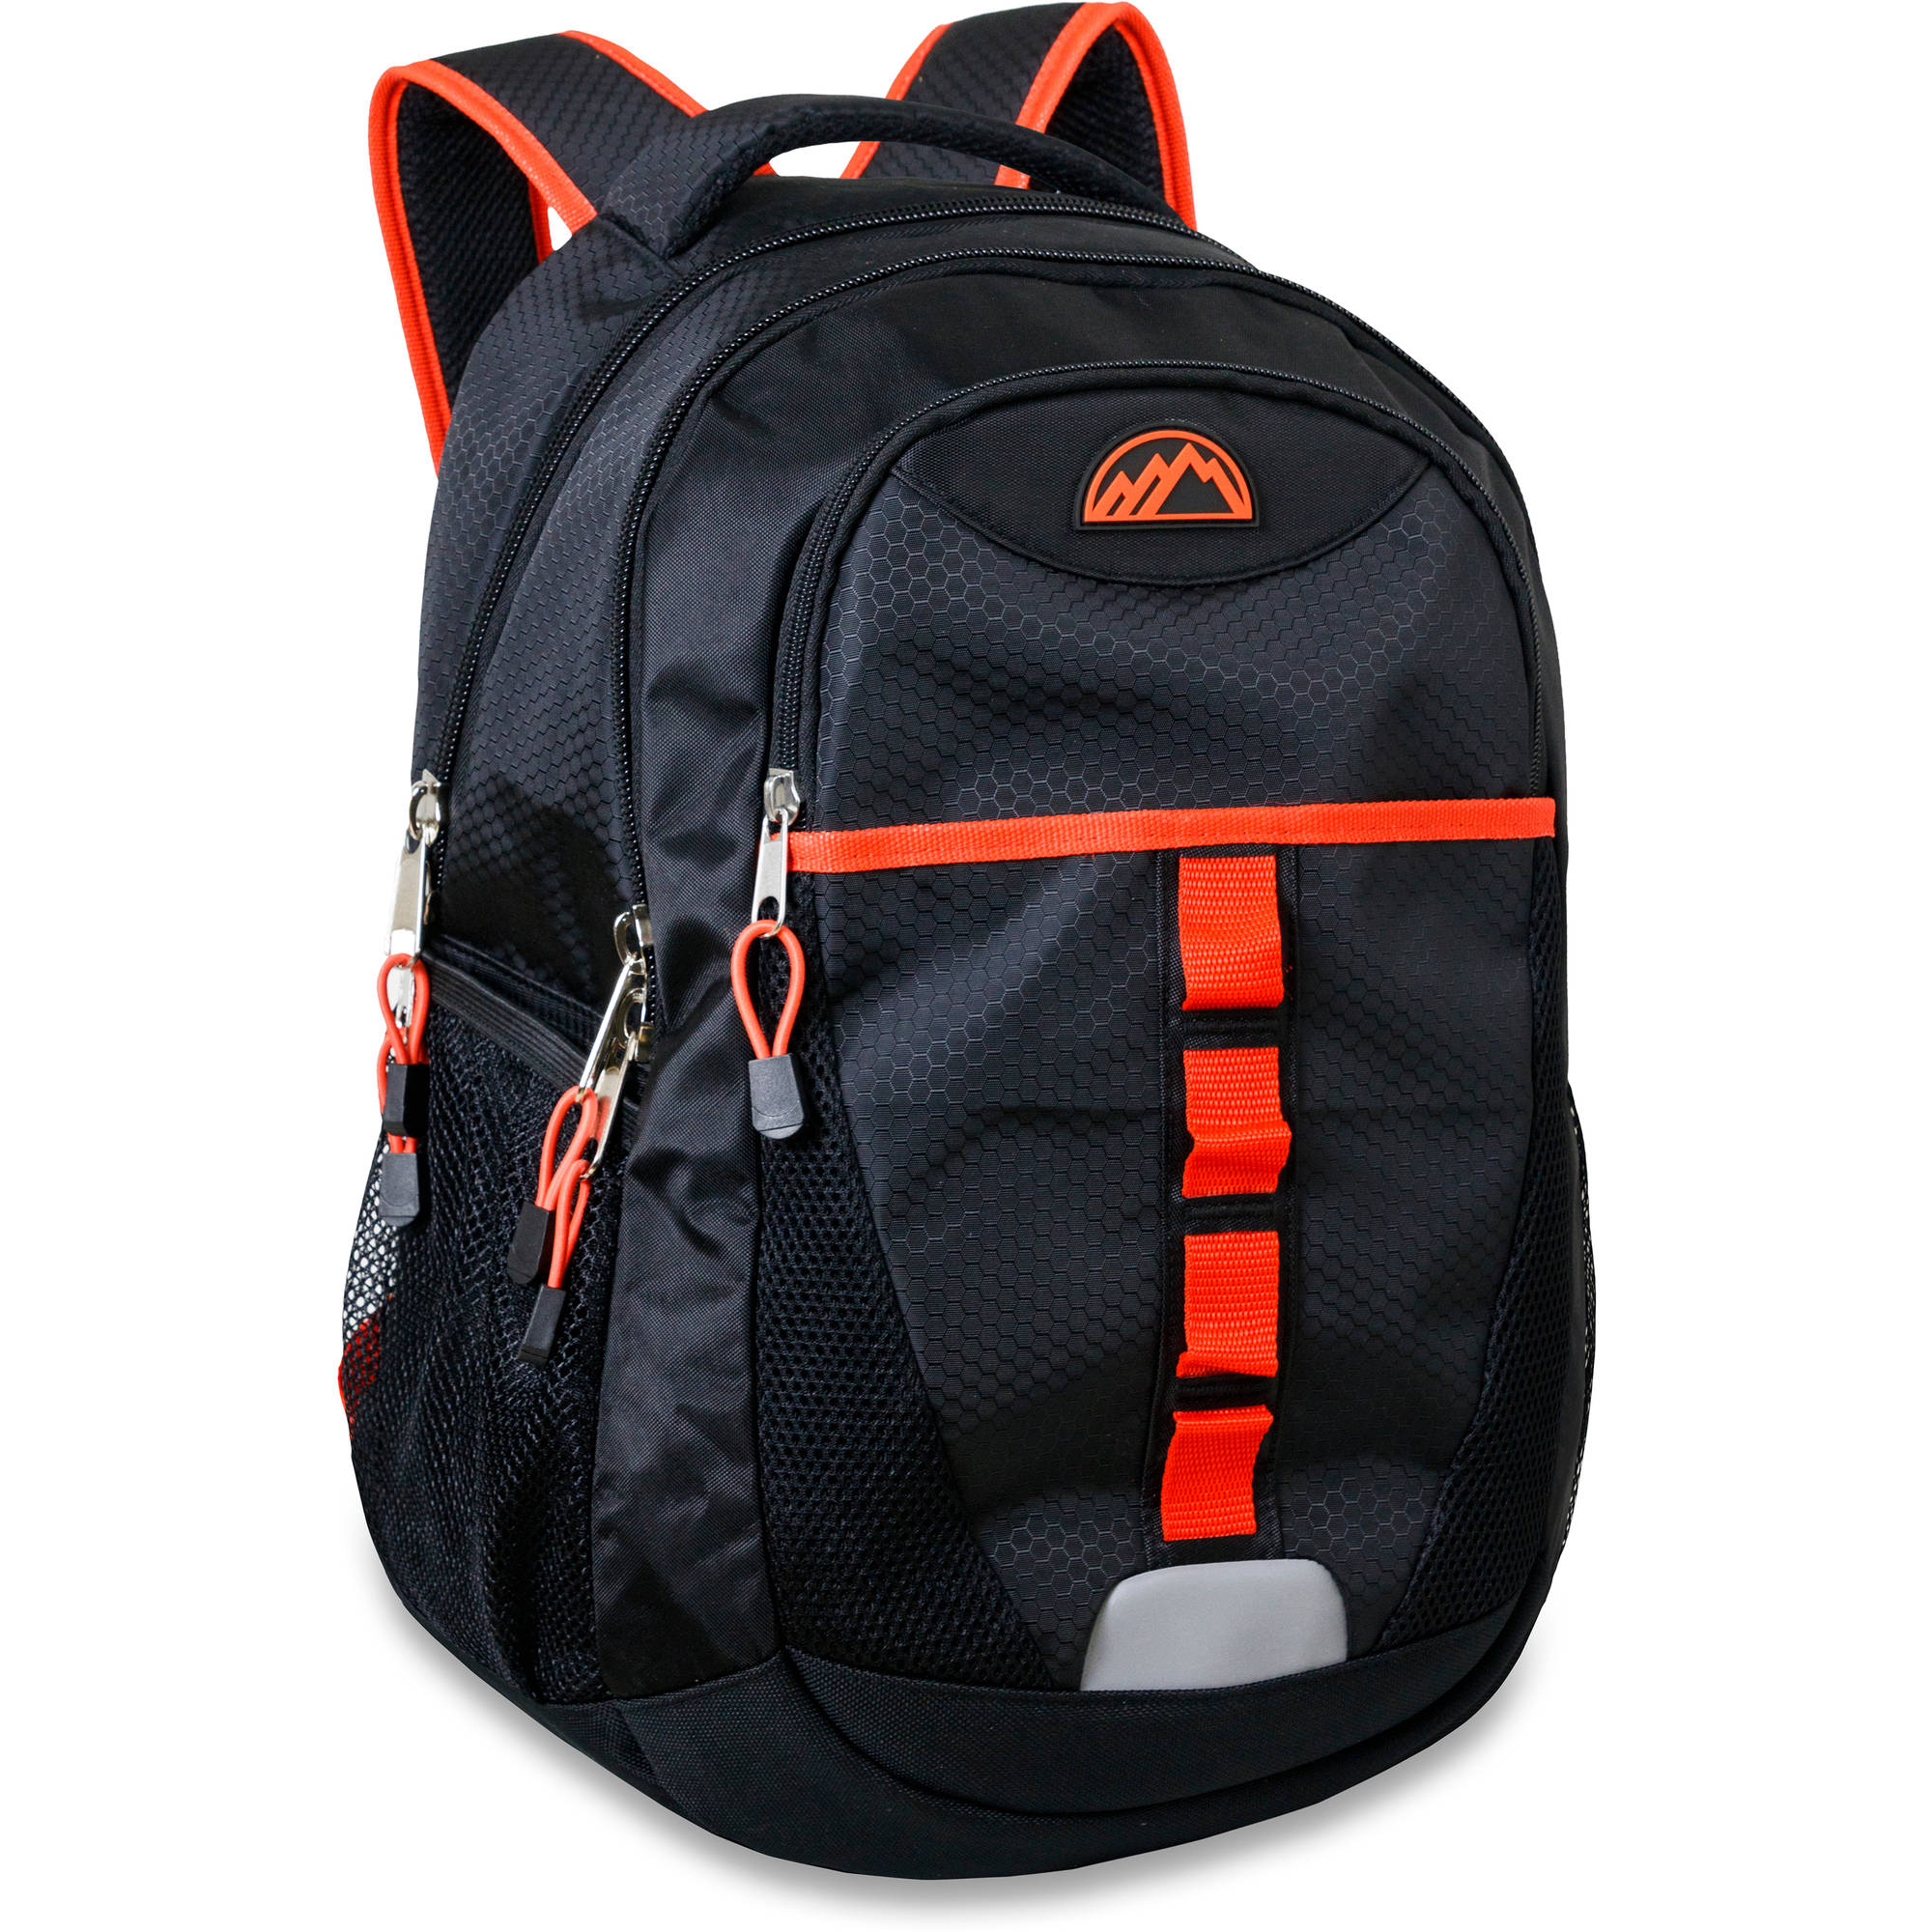 Mountain Edge 19 Inch Honeycomb Backpack with Tech Section